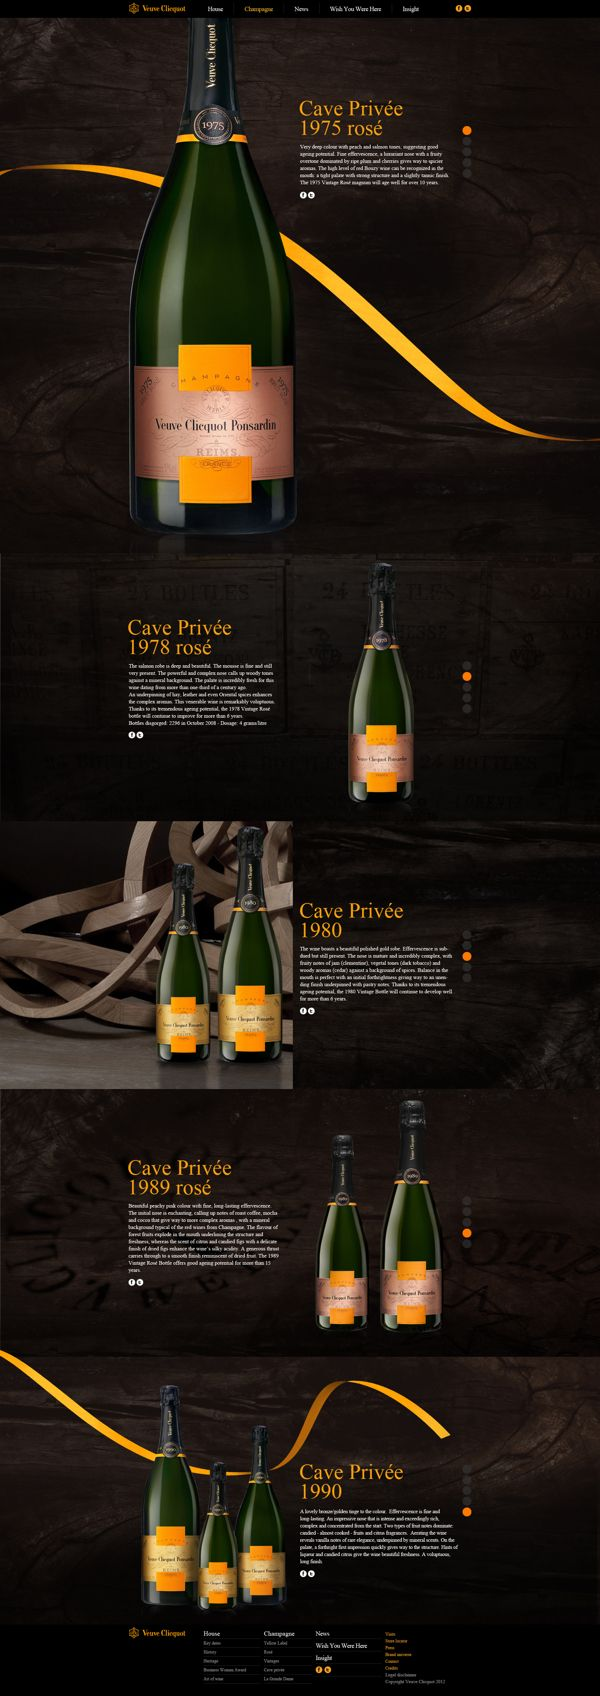 Veuve Clicquot on Behance